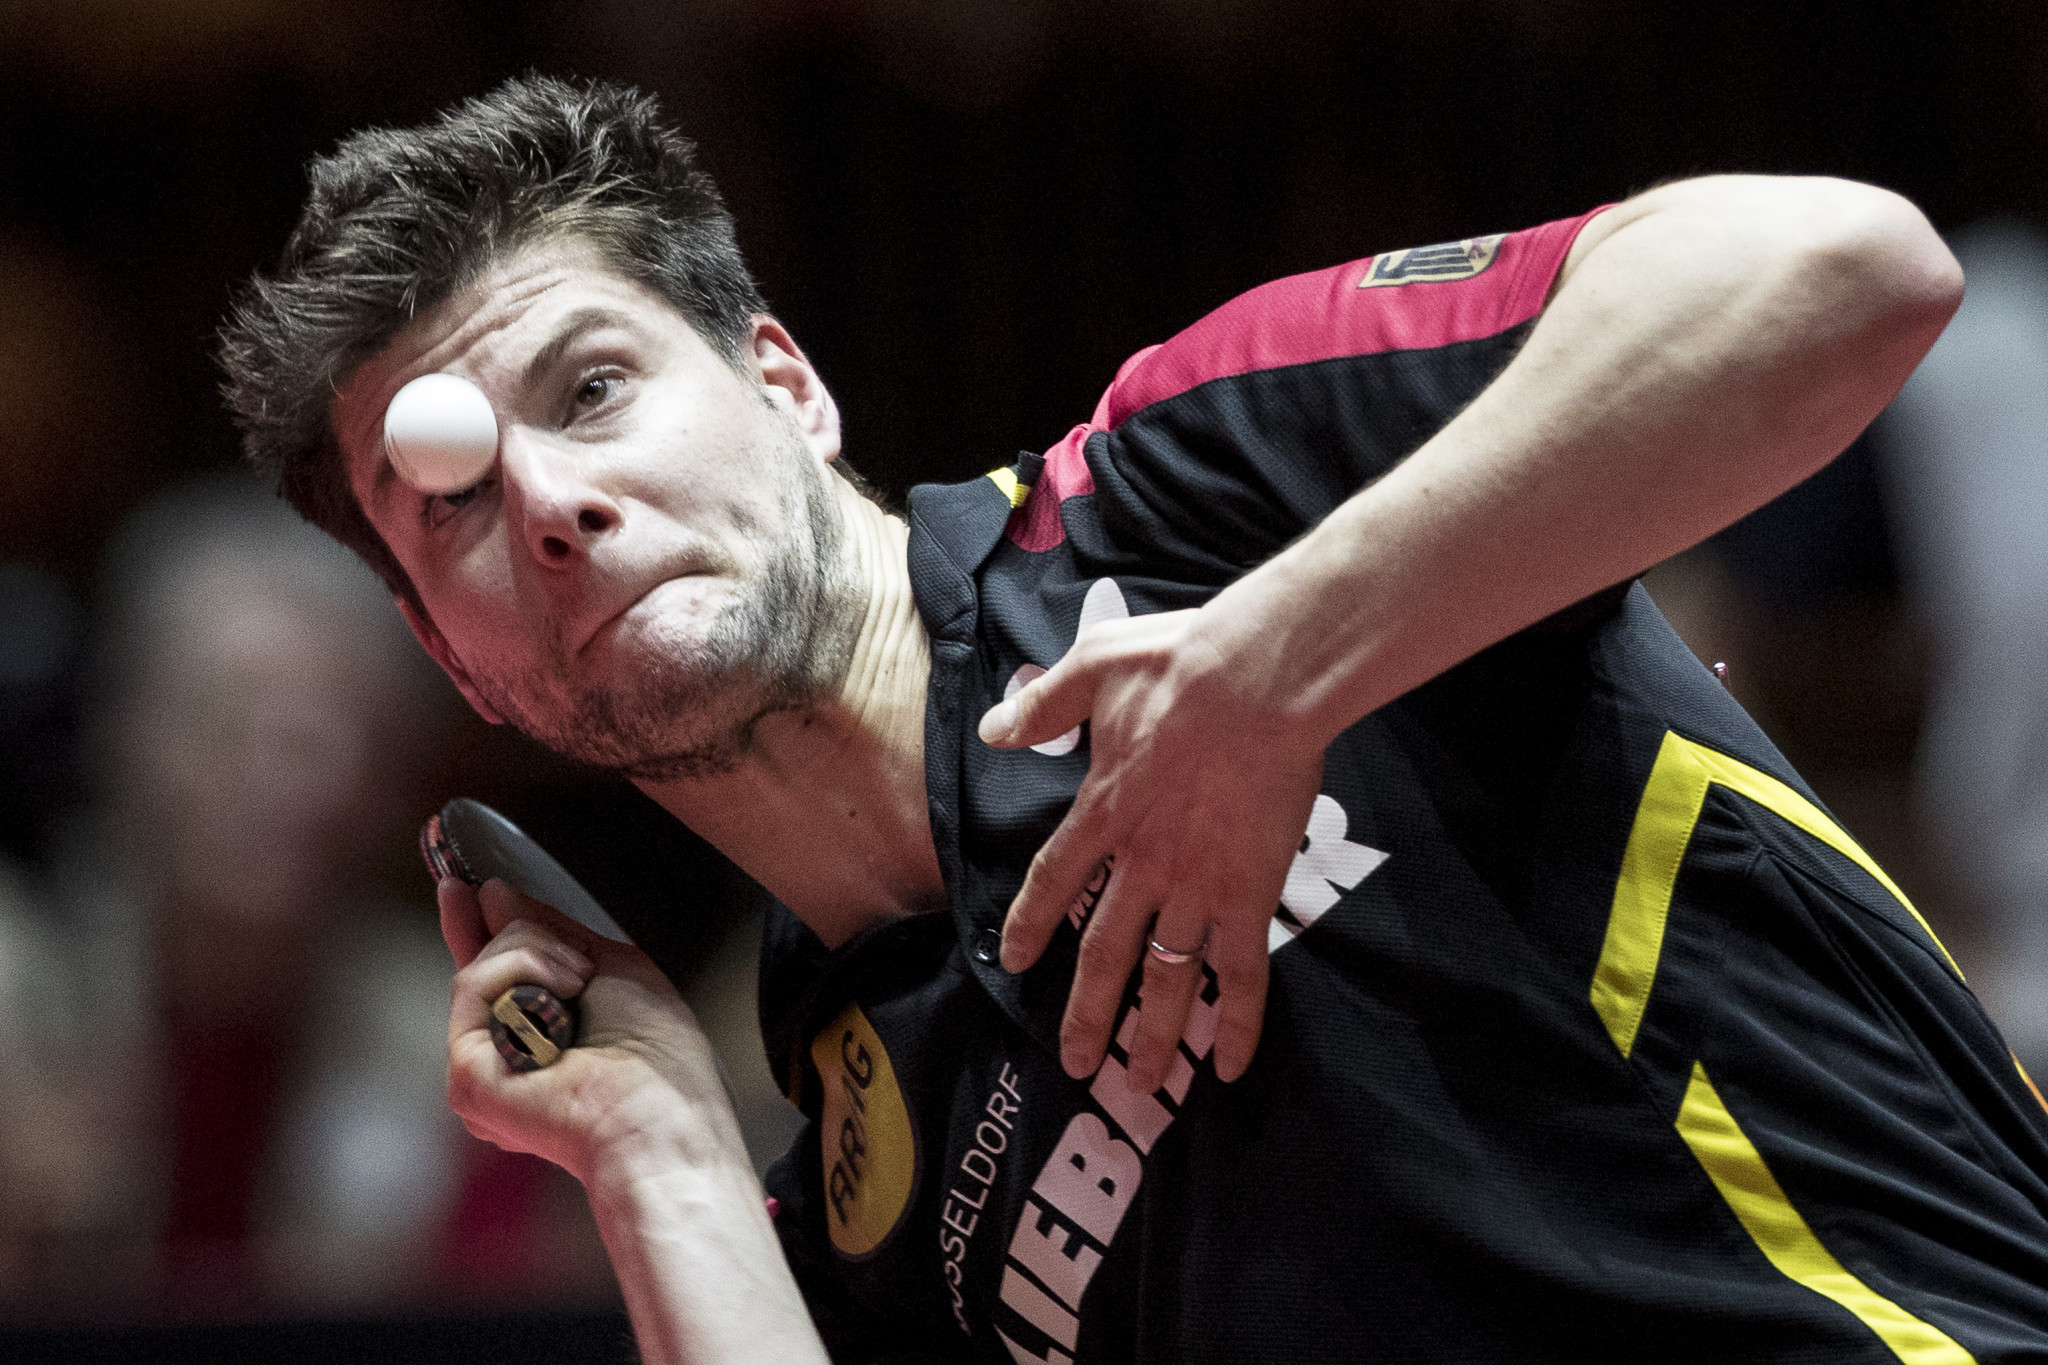 Germany's Dimitrij Ovtcharov, pictured, and China's Chen Meng are the new ITTF world number ones ©Getty Images